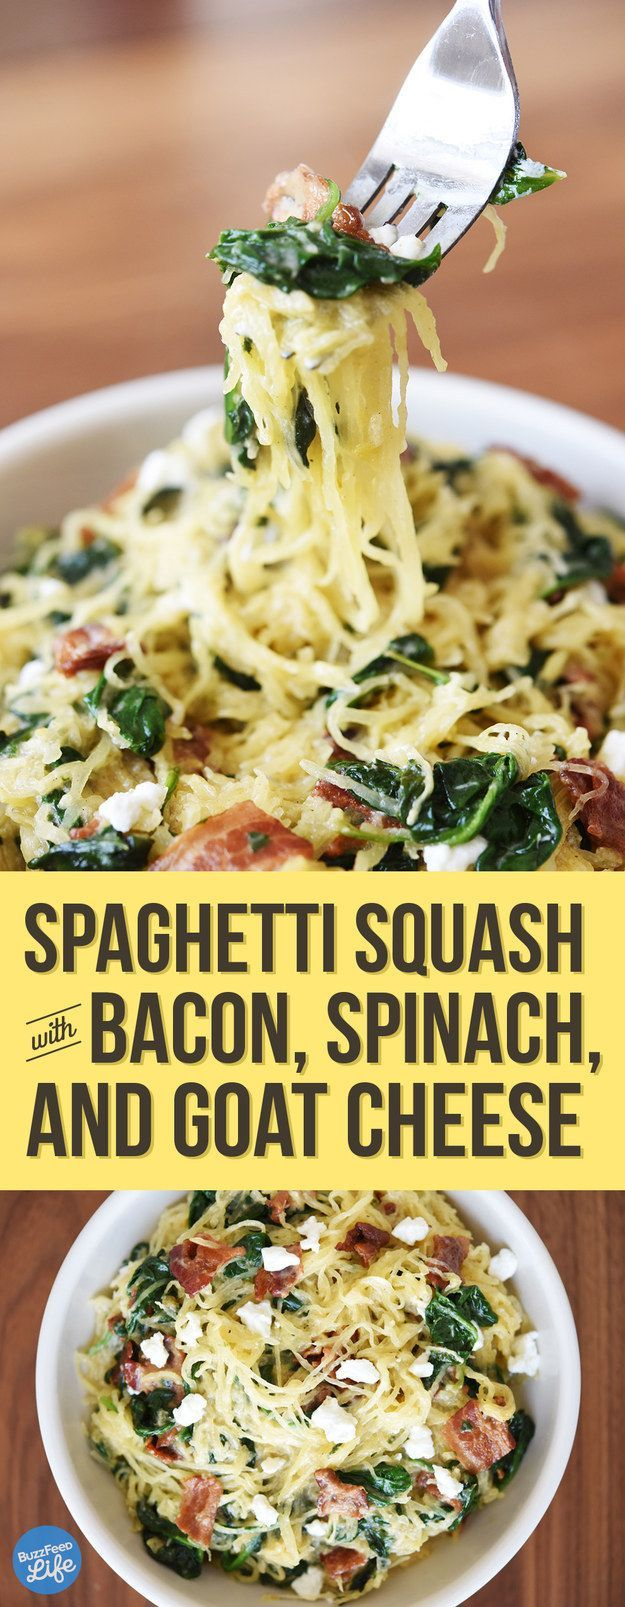 Spaghetti Squash With Bacon, Spinach, and Goat Cheese | 5 Quick And Easy Dinners To Make This Week